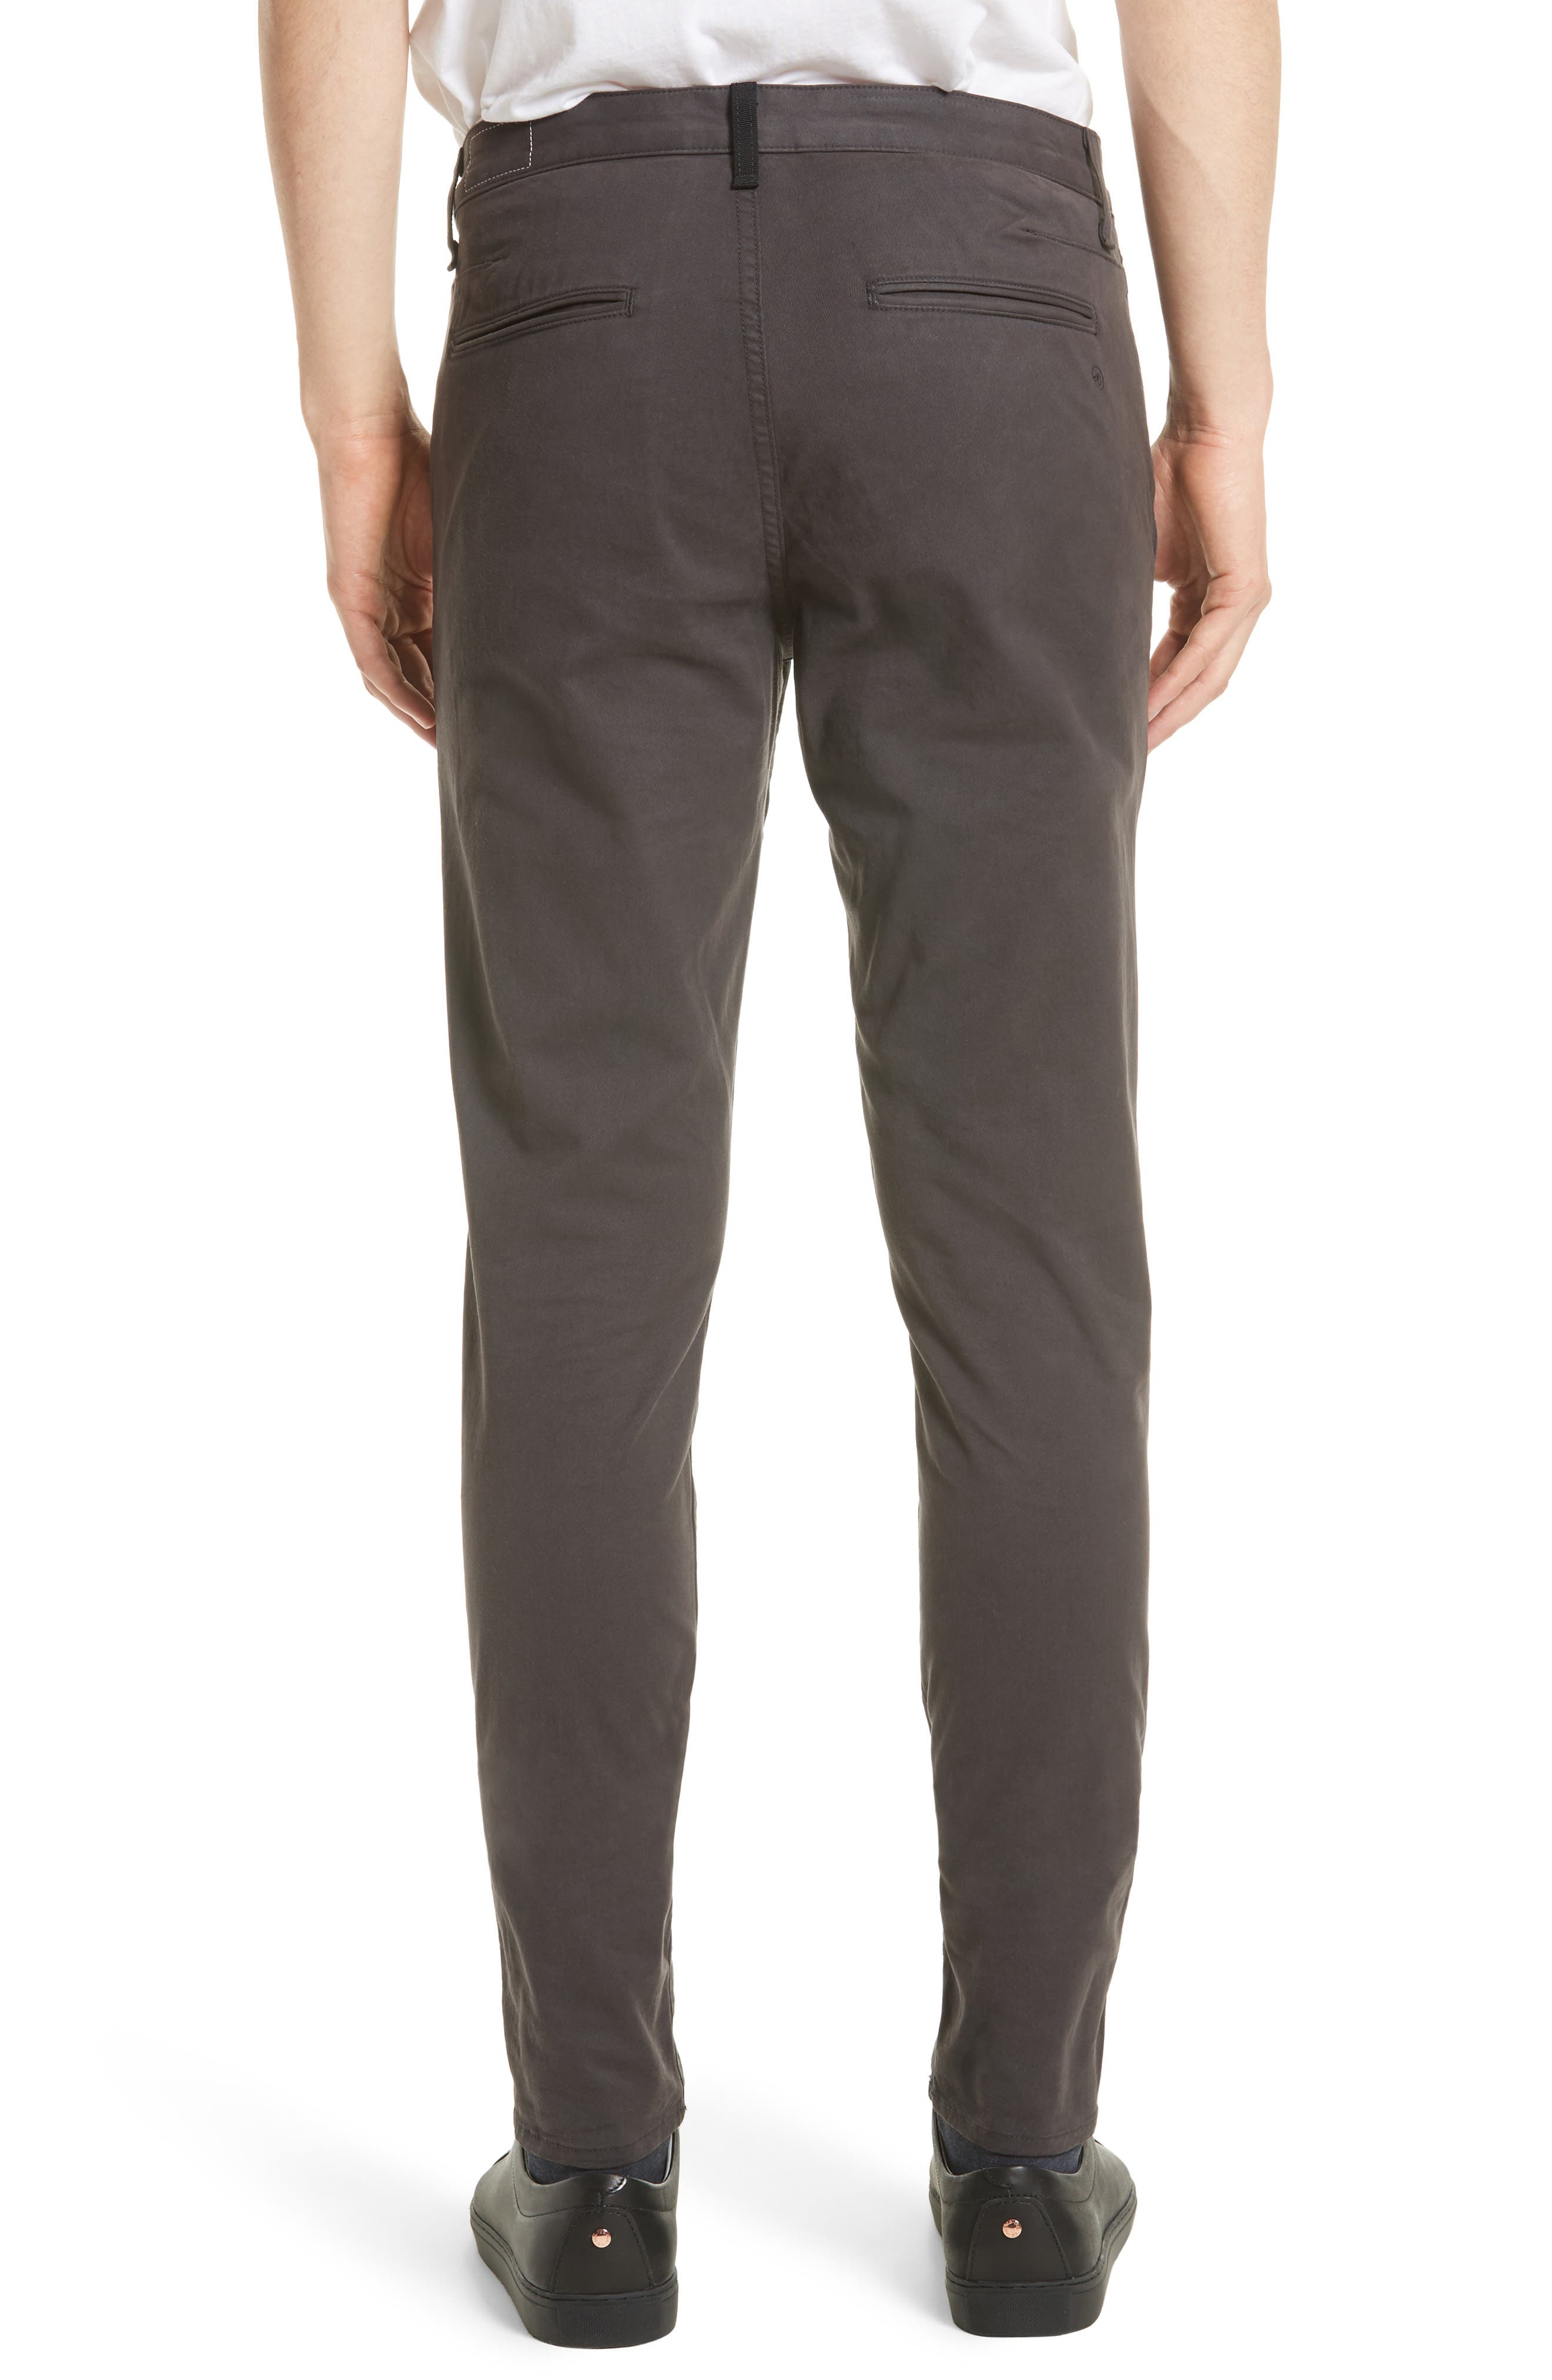 Fit 1 Chinos,                             Alternate thumbnail 2, color,                             GREY